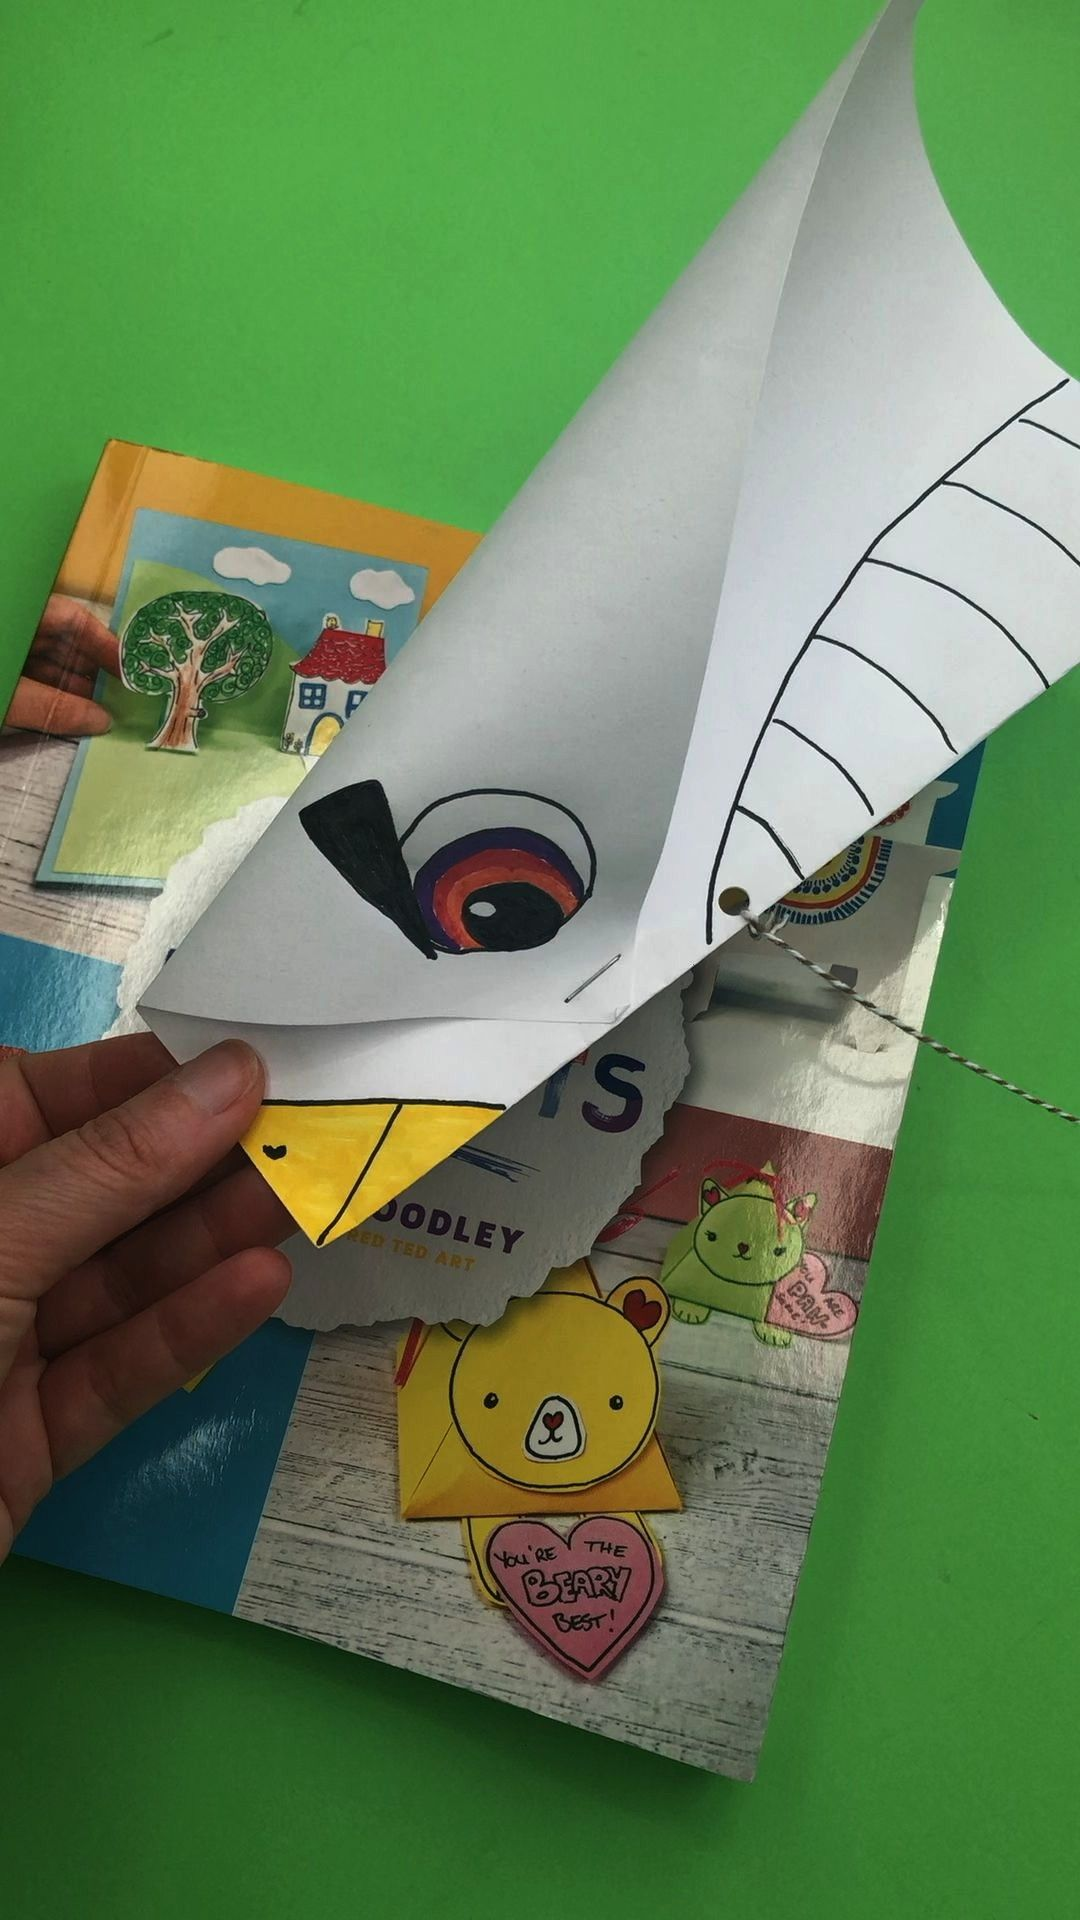 Easy Paper Kite Super Easy Paper Kite Red Ted Art redtedart Latest From Red Ted Art One of the easiest paper kites to make with kids just one sheet of paper and some stat...